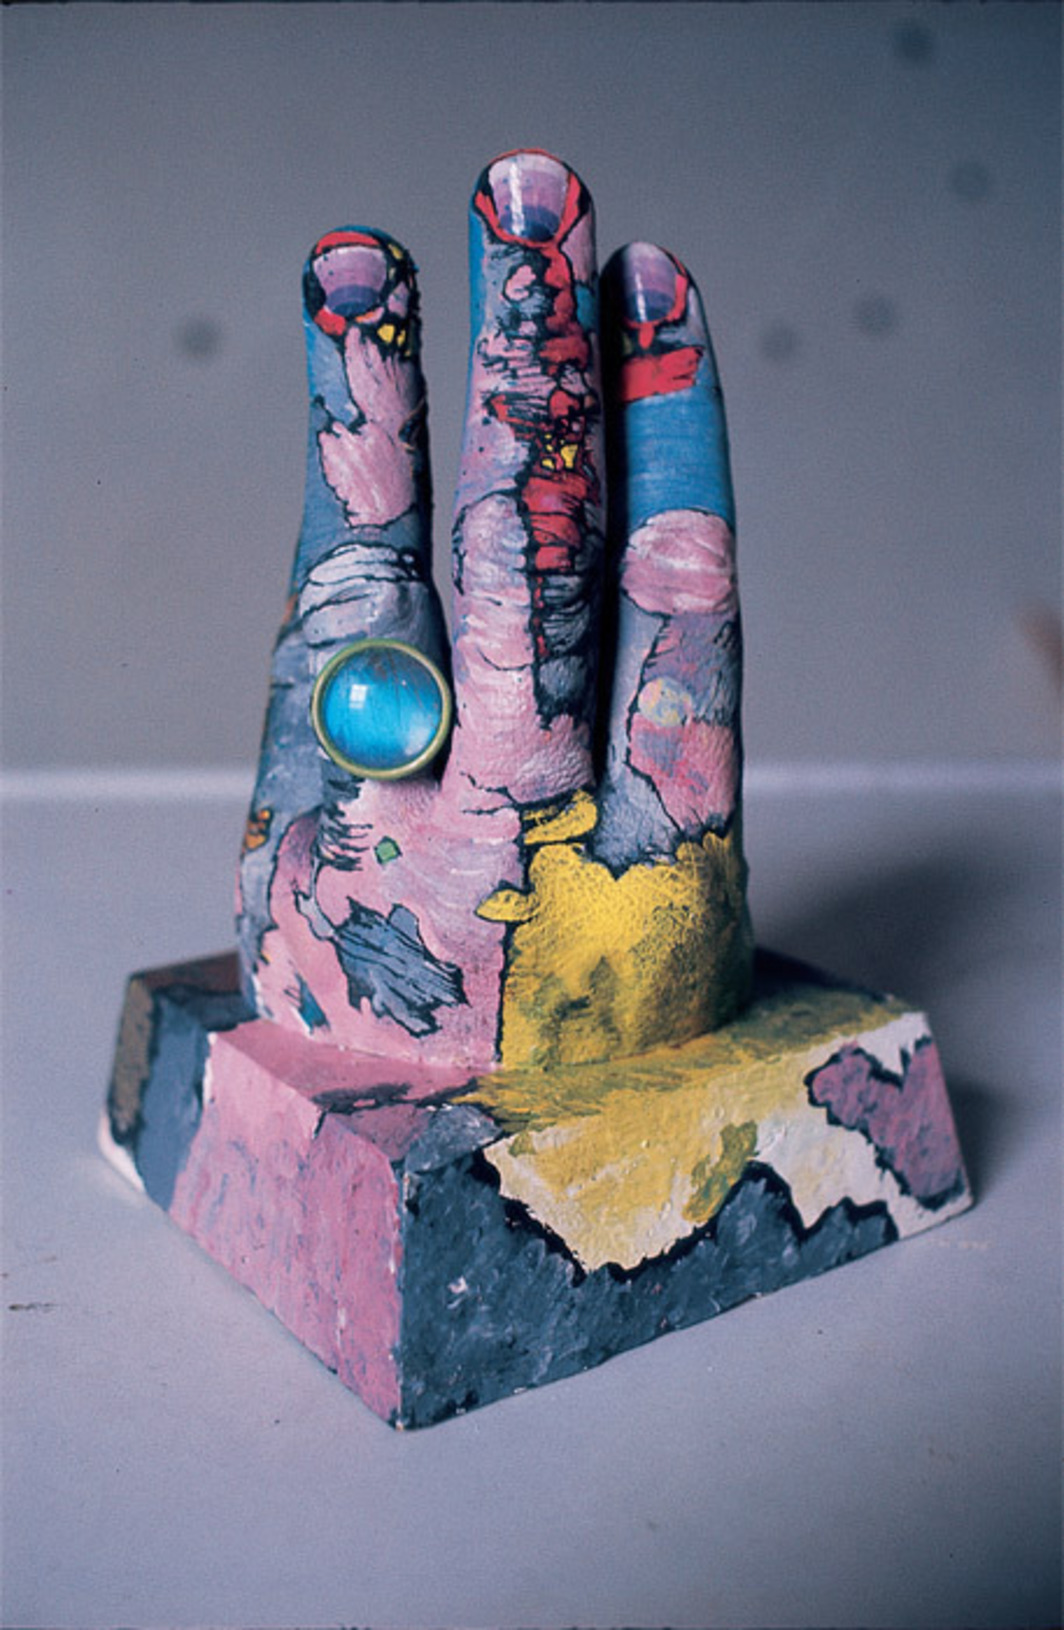 "Paul Thek, Untitled (Hand with Ring), 1967, wood, plaster, paint, metal, 7 1/4 x 4 1/2 x 4 1/2"". Photo: Peter Hujar, 1967."